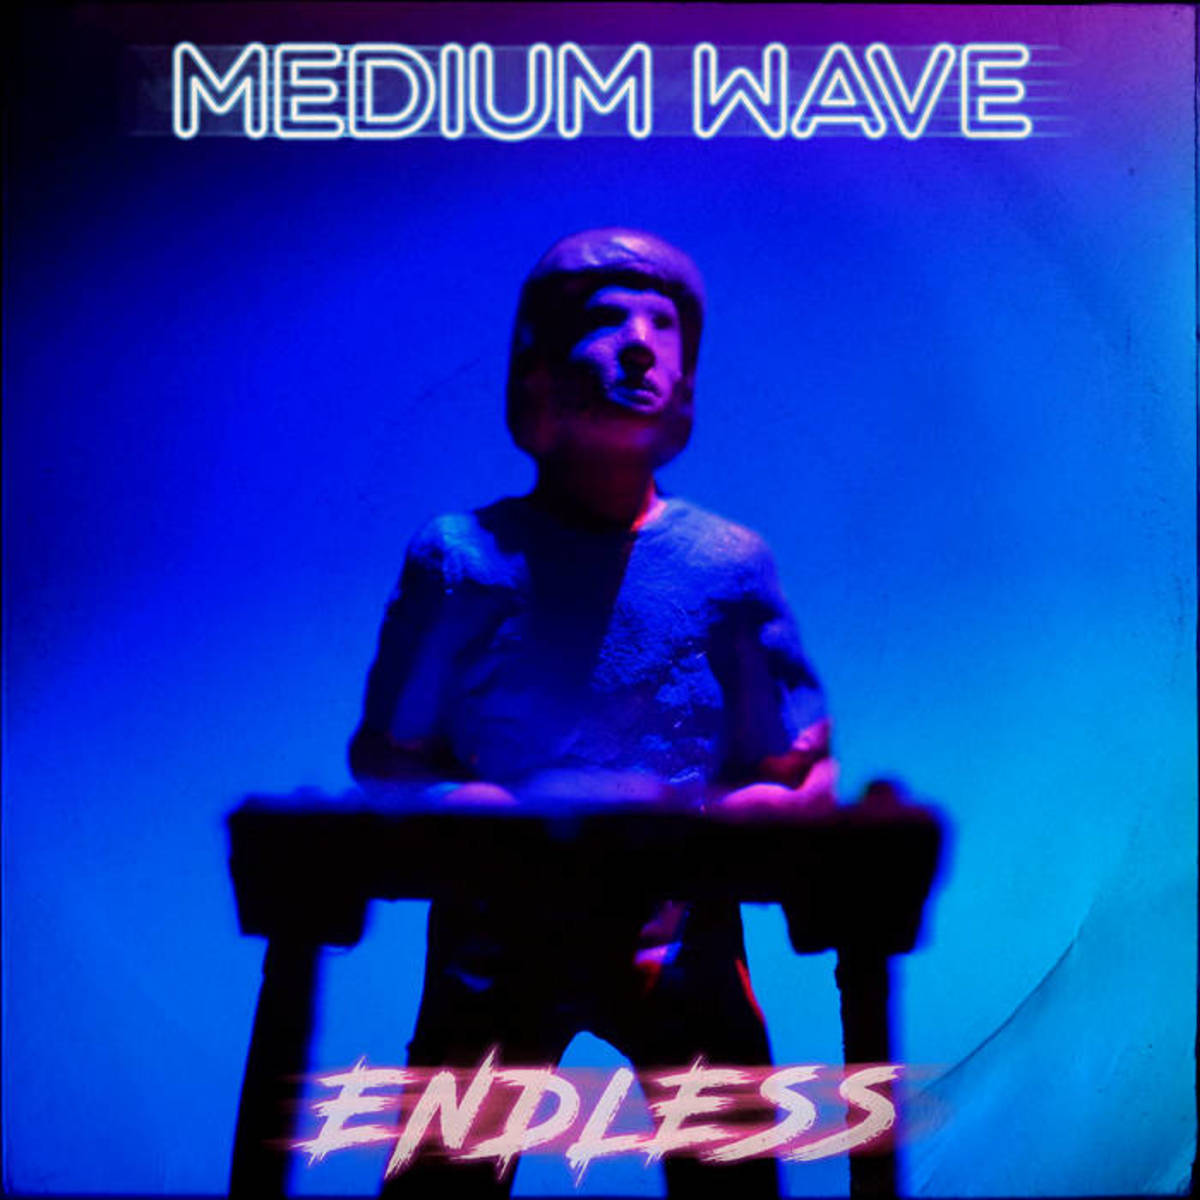 """Synthpop Single Review: """"Endless"""" by Medium Wave"""